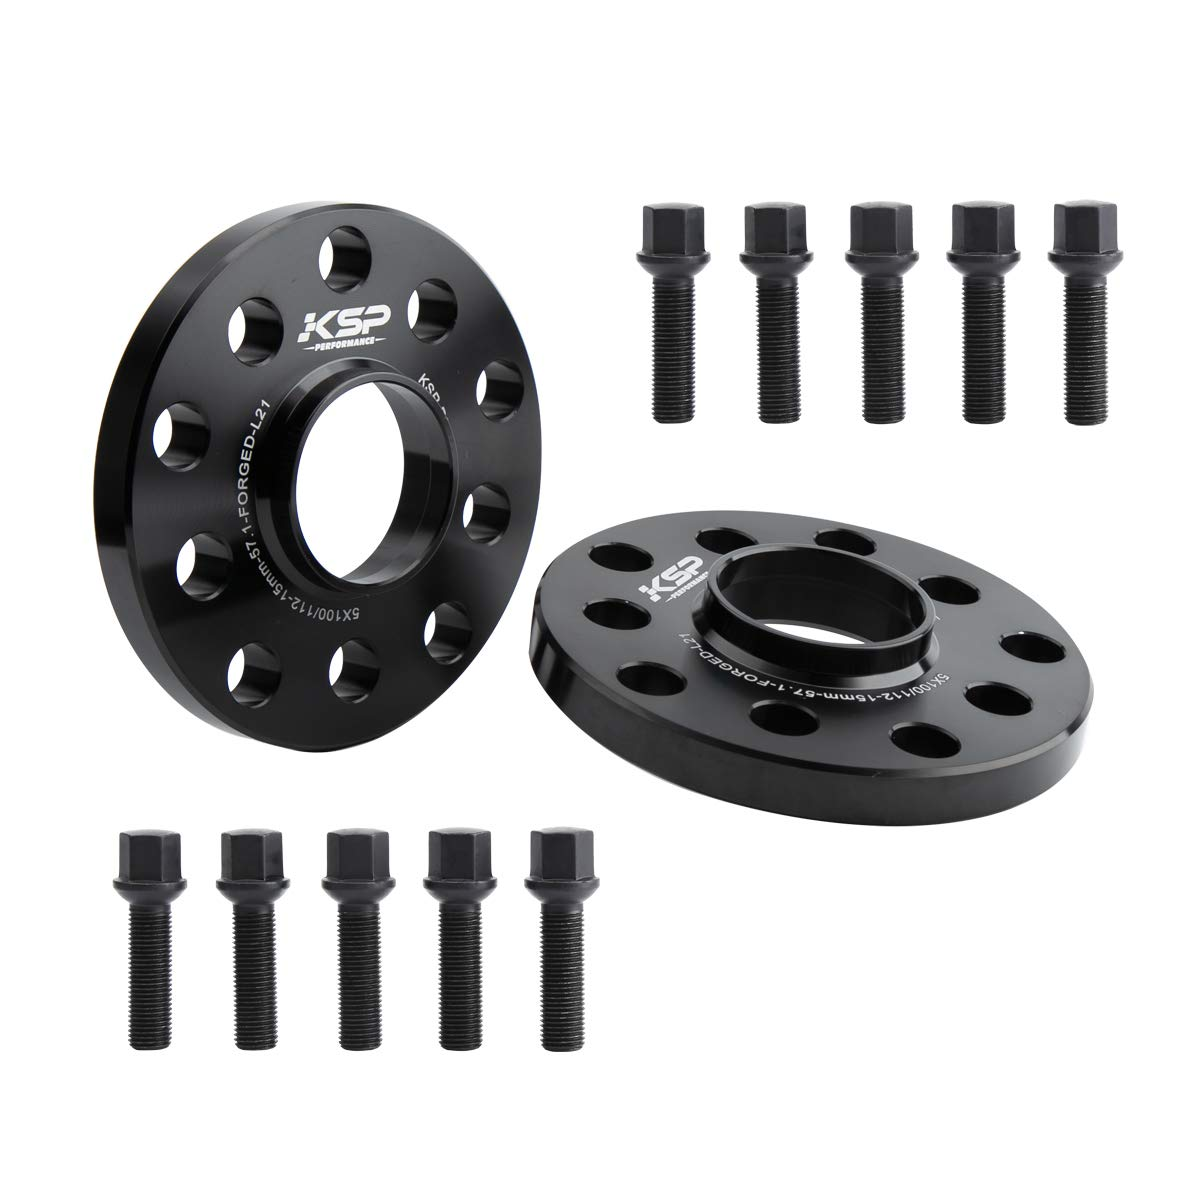 KSP 5X100 5X112 Wheel Spacers, 2PCS 15mm Hubcentric Forged Spacers With Sphere Seat Lug Bolts fit for Audi A3 A4 A6 A8 S4 S6 S8 Quattro TT VW 5 Lug Thread Pitch M14x1.5 Hub Bore 57.1mm, 2-Year Warrany by KSP Performance